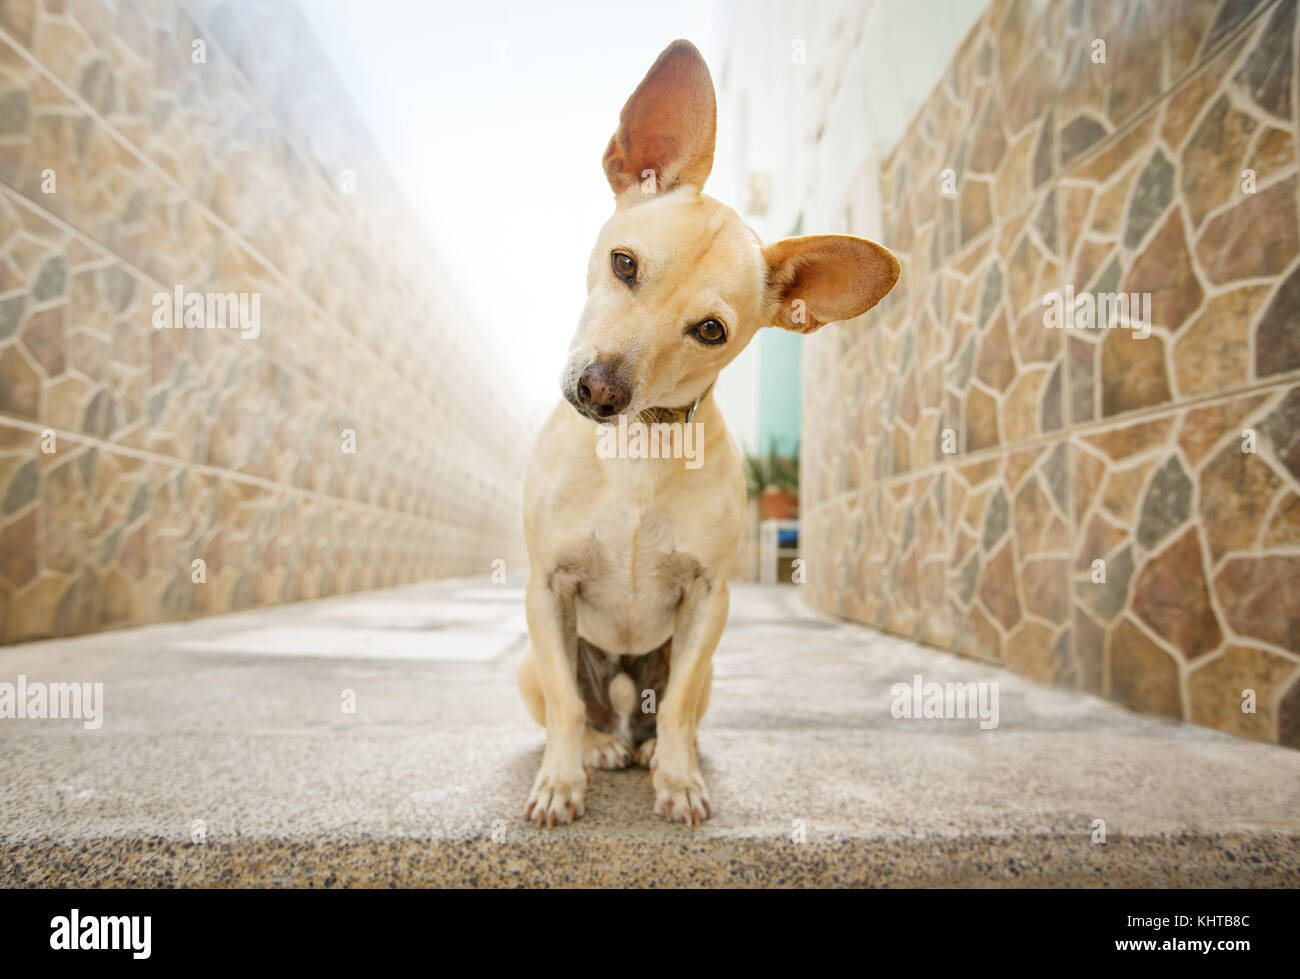 curious chihuahua dog waiting for owner to play  and go for a walk with leash outdoors - Stock Image